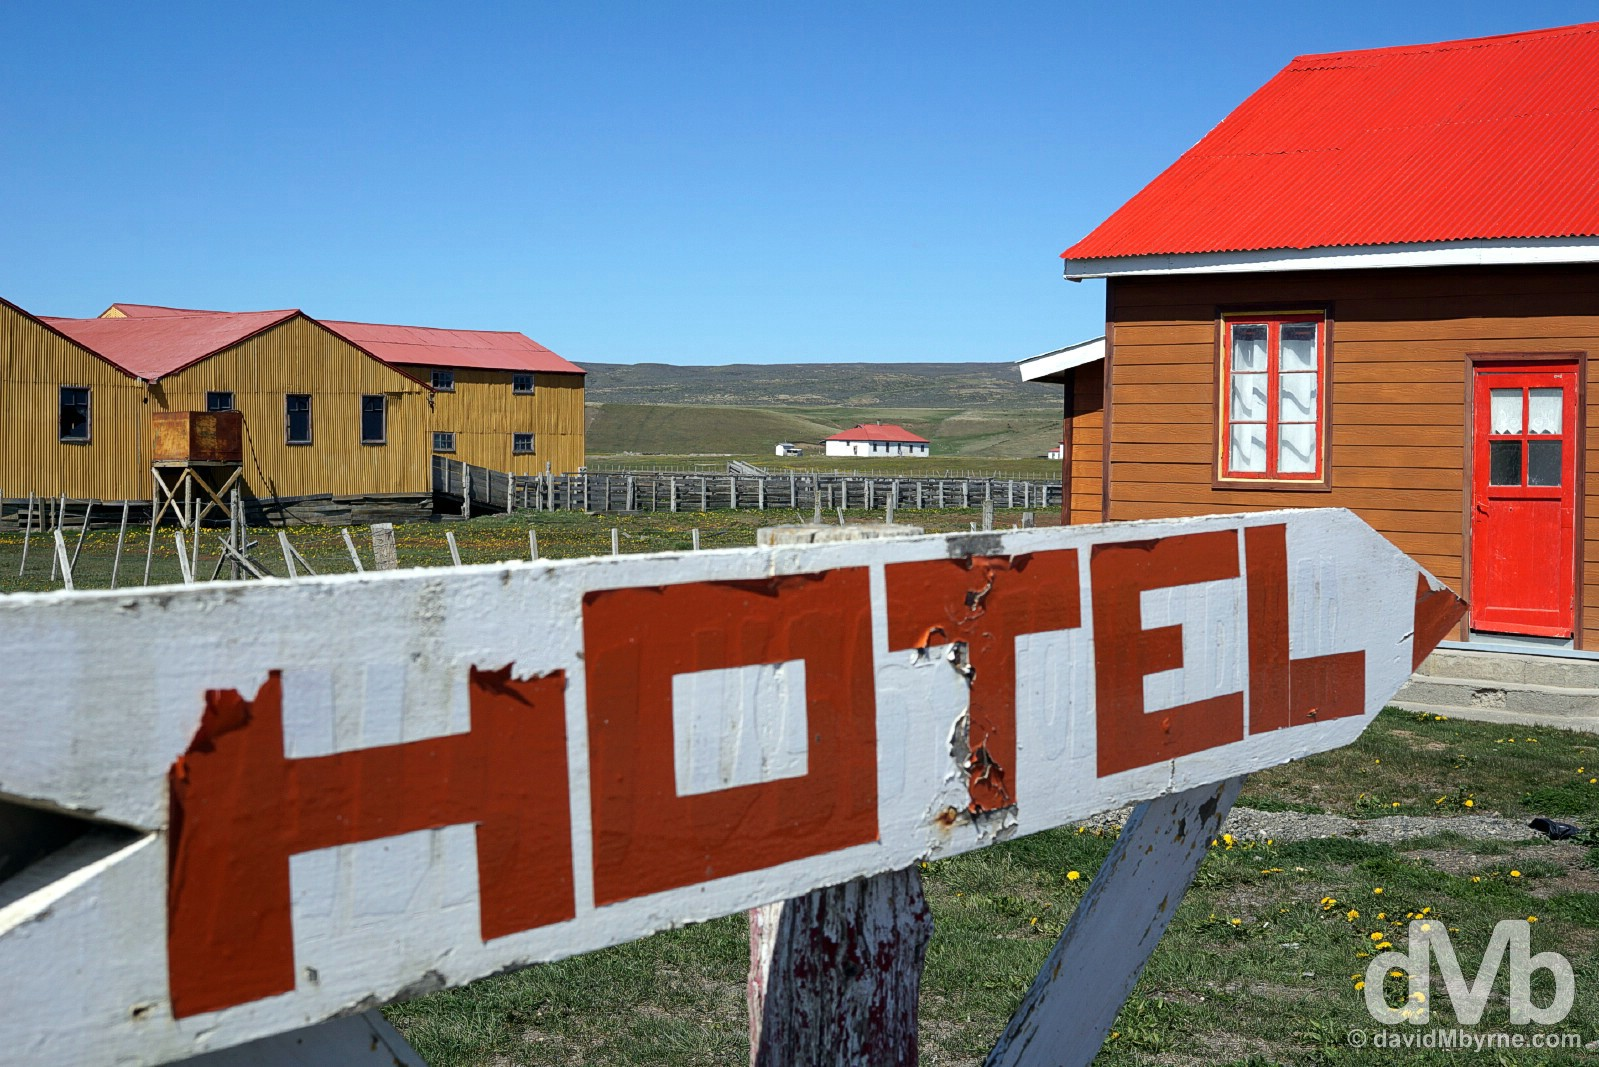 Buildings near the San Sebastian border crossing with Argentina in Tierra del Fuego, Chile. November 11, 2015.